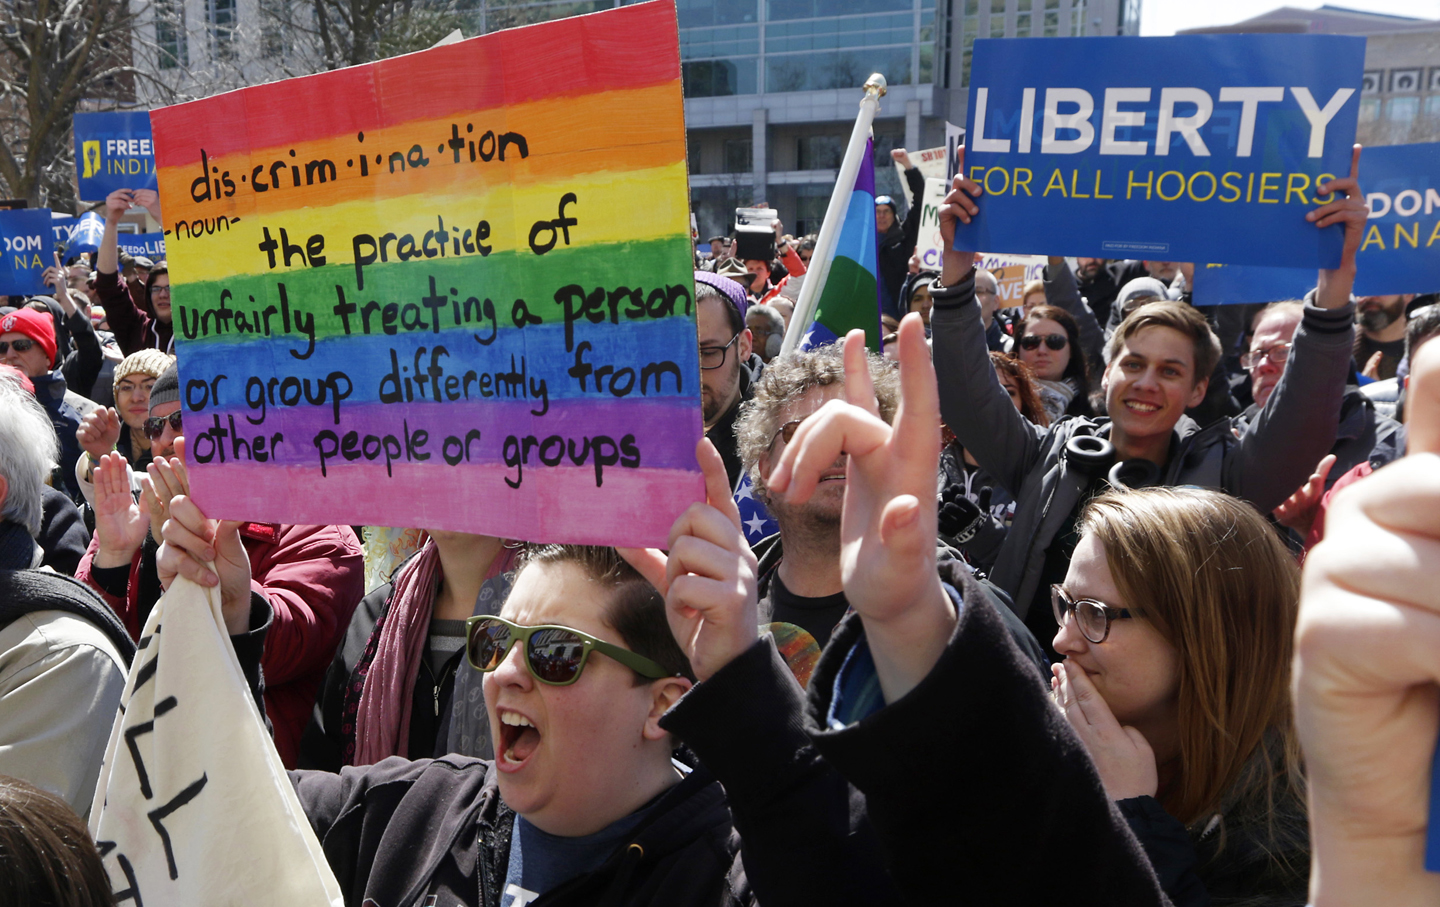 Gay marriage is not a civil rights issue